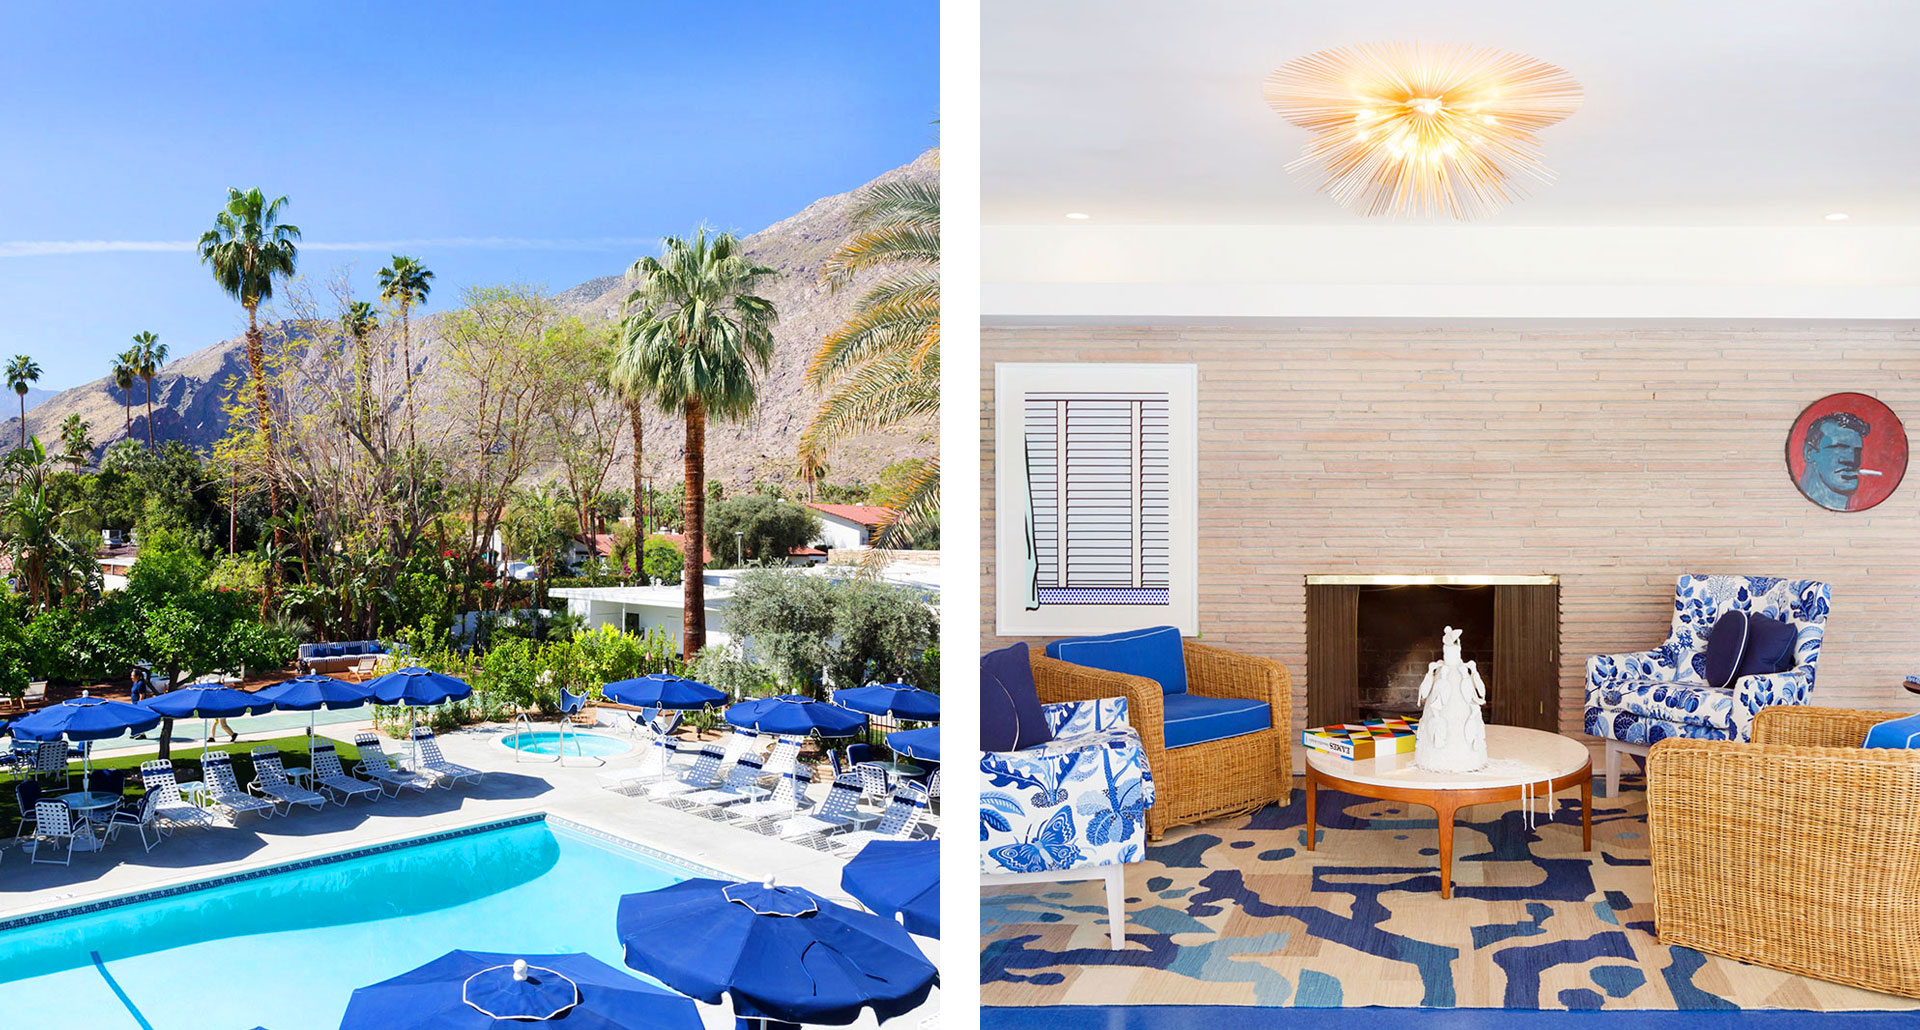 Holiday House - boutique hotel in Palm Springs